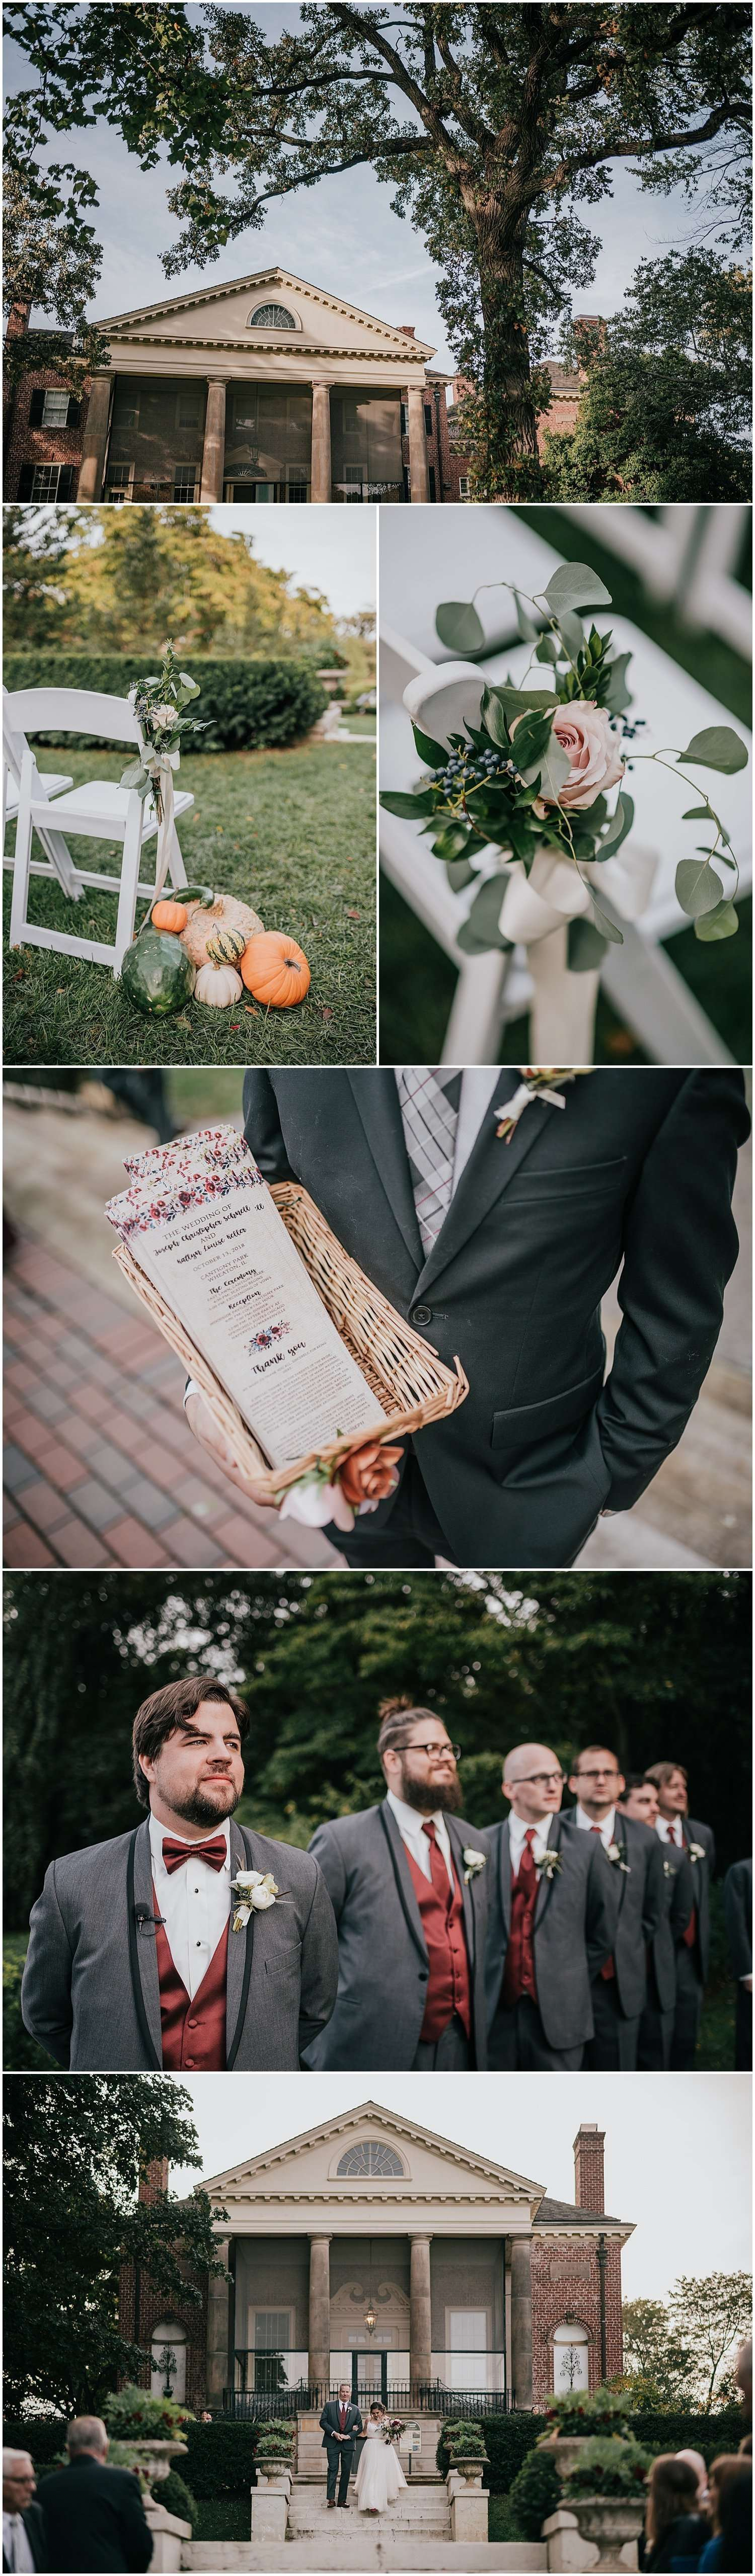 fall in cantigny park, cantigny park, wedding, wedding photographer, wheaton, illinois, chicago, best chicago wedding photographer, best chicago photographer, iron and honey photography, photographer, photography, fall, autumn, pumpkin, decor, decorations